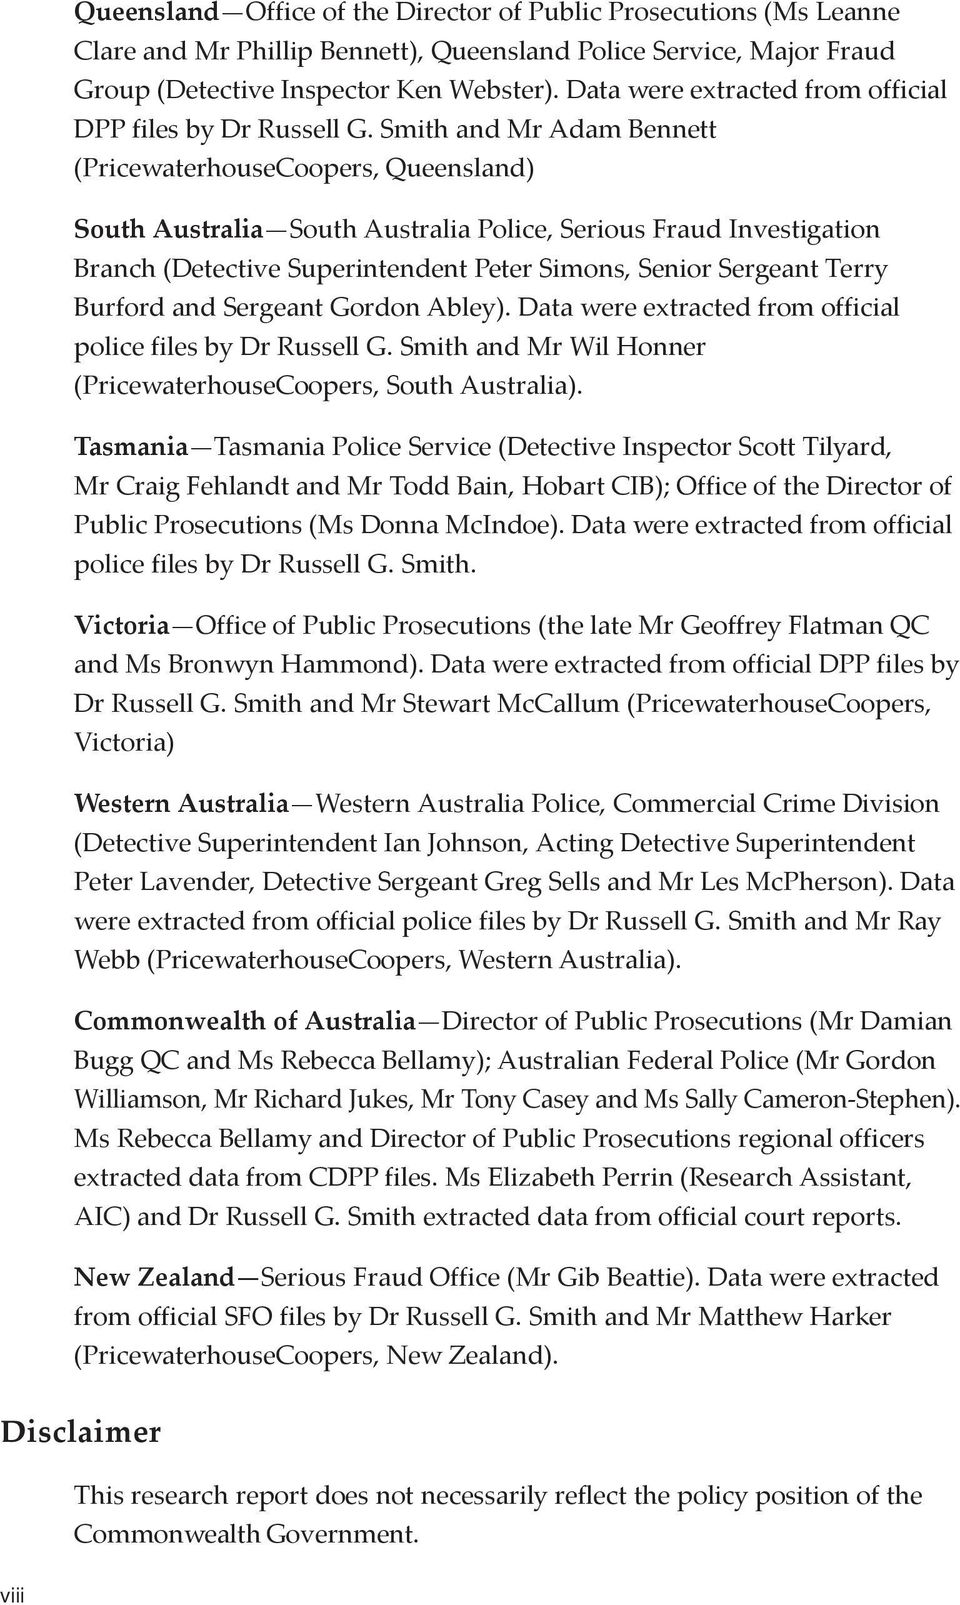 Serious Fraud In Australia And New Zealand Pdf Free Download